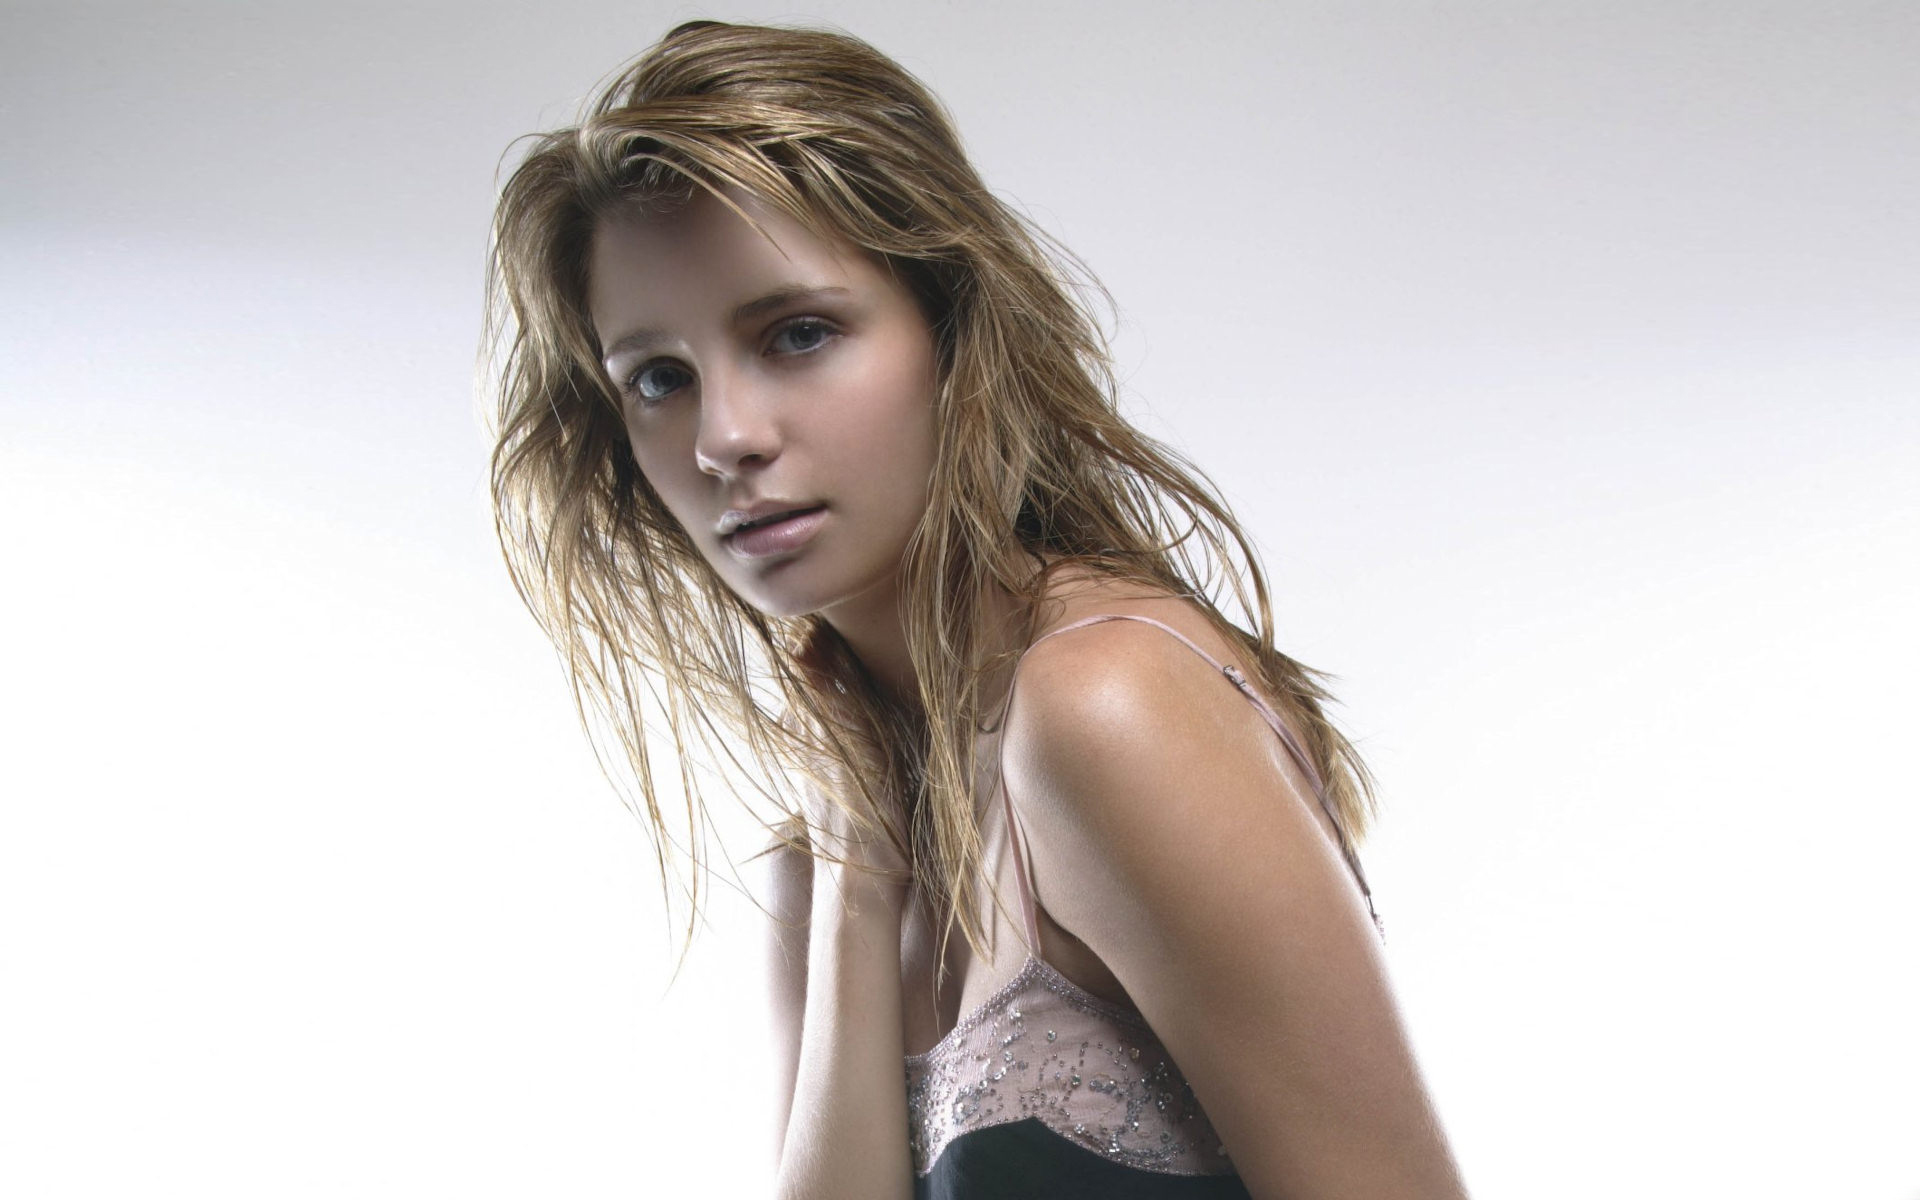 woman Actress mischa barton Simple Background